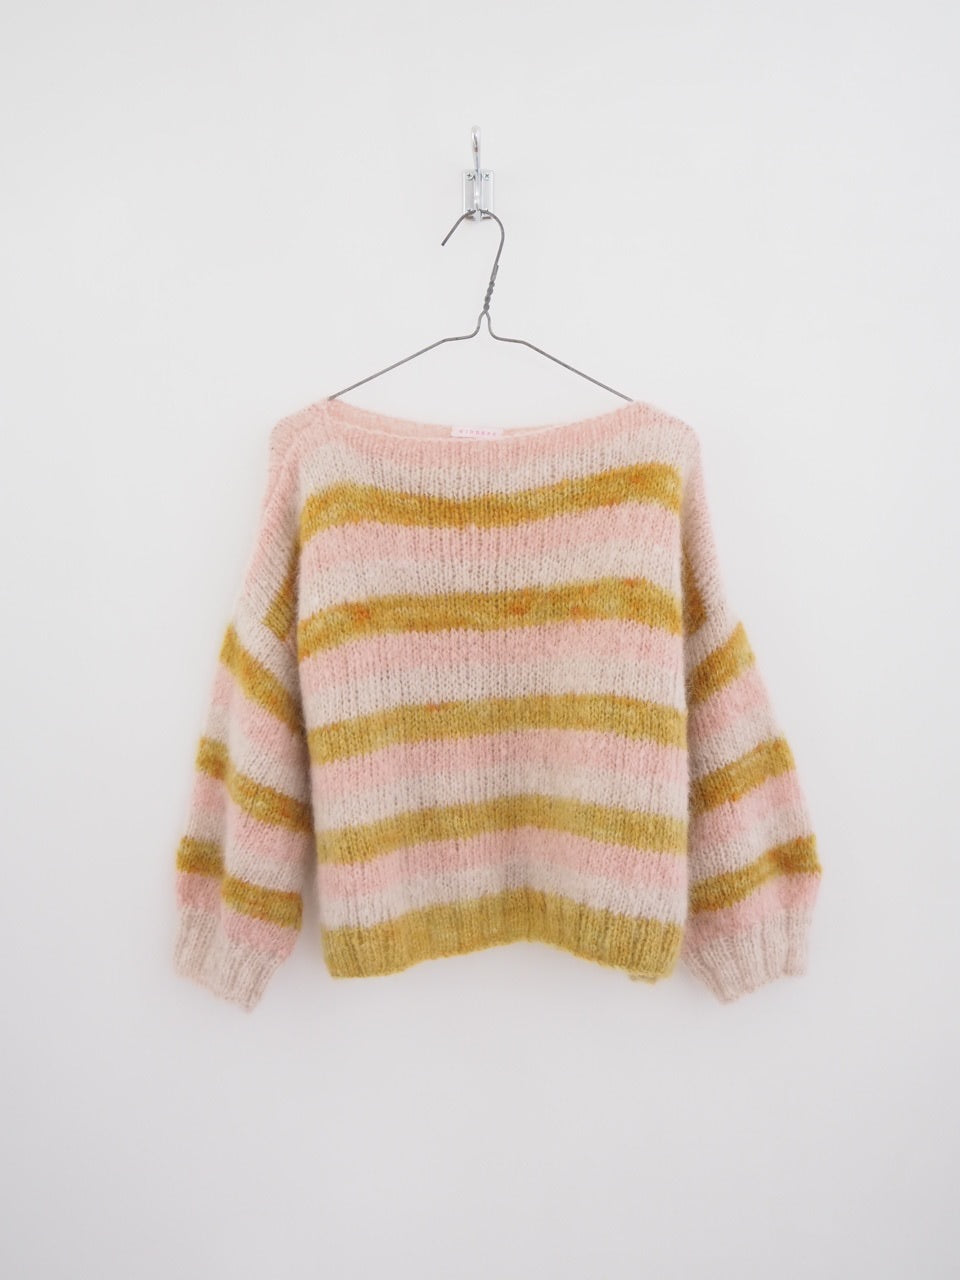 Hand knit jumper - Dusky pink, pale pink and mottled mustard stripes.